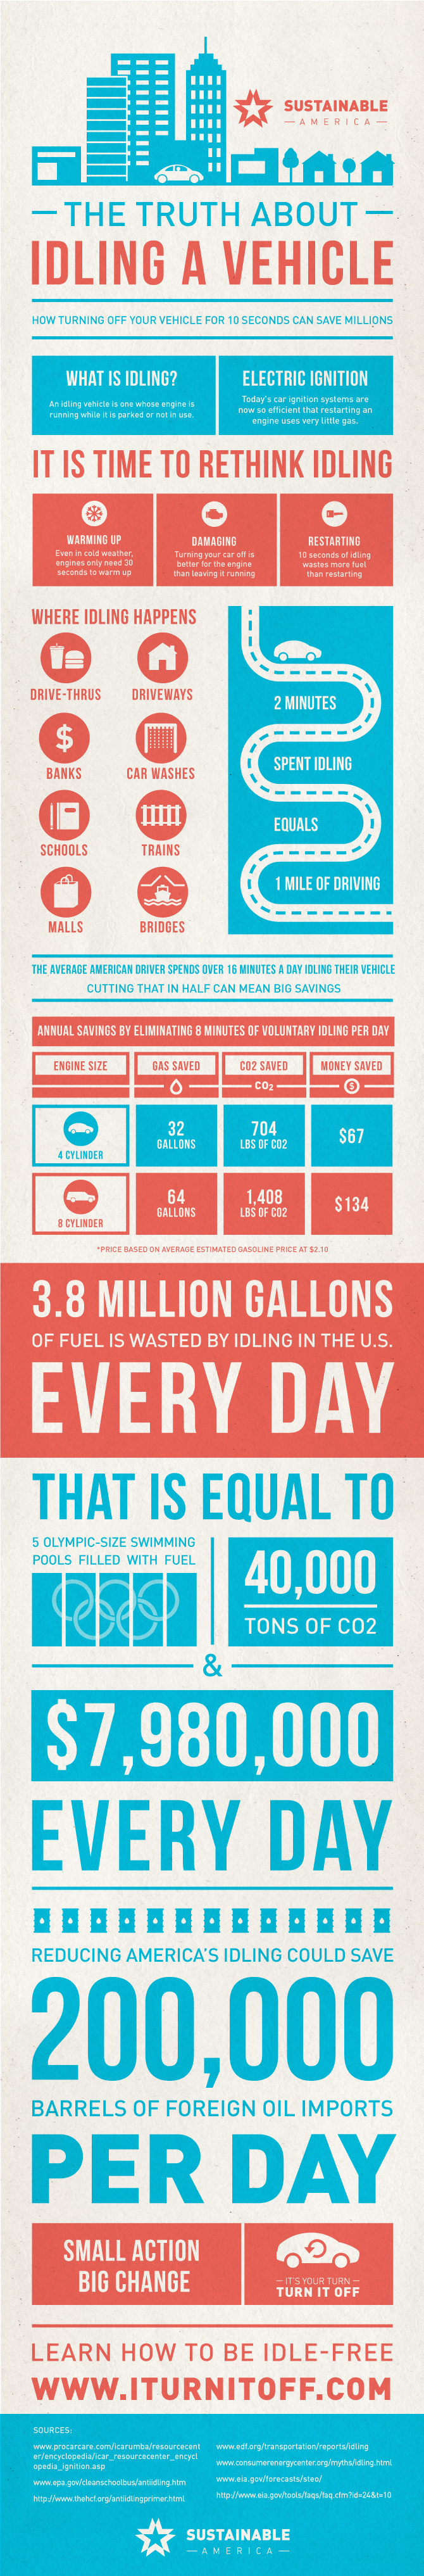 Idling_Infographic_01_update